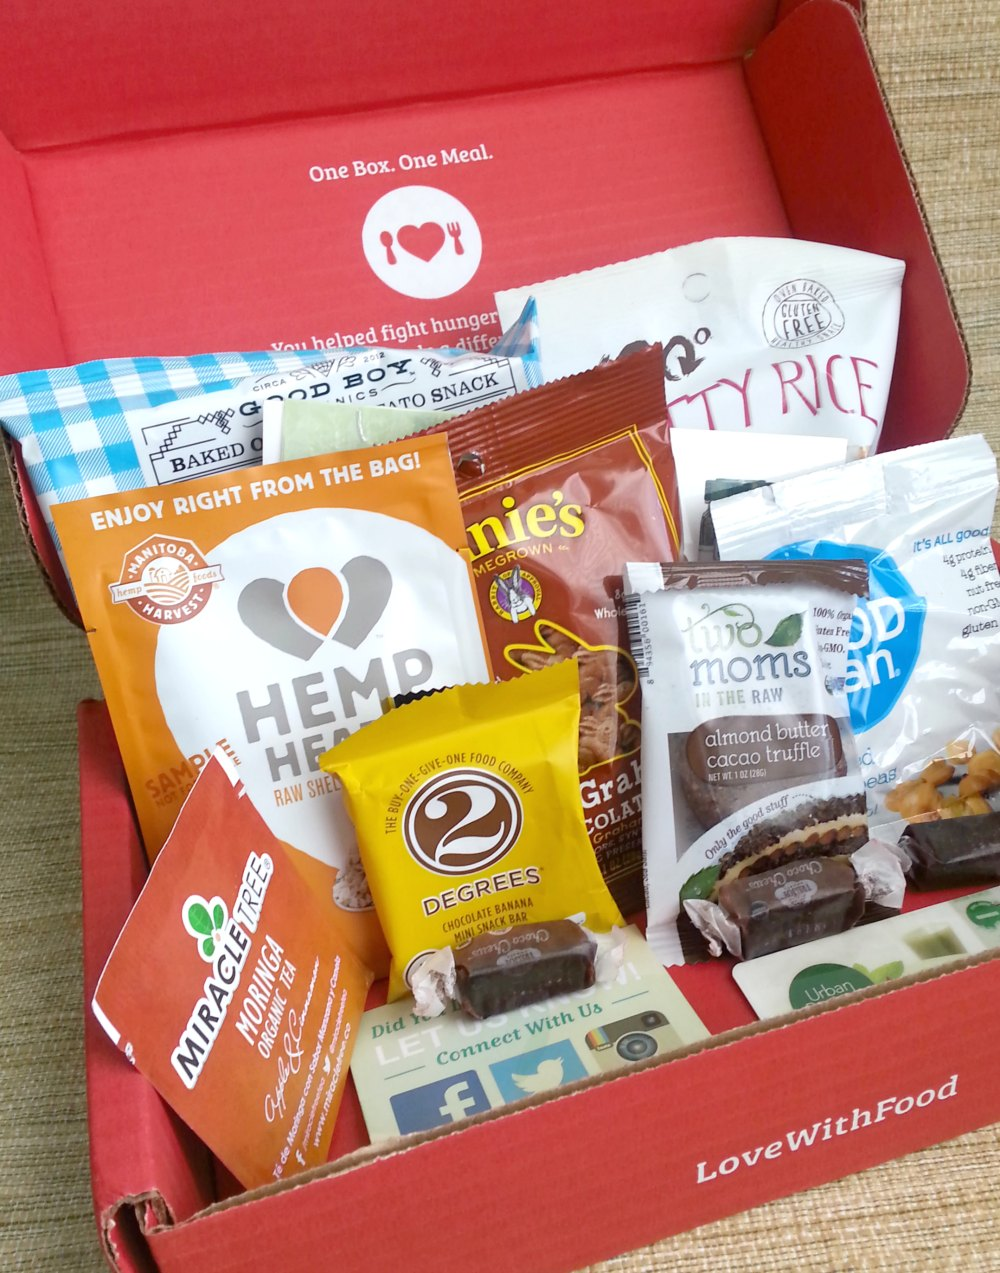 The #LoveWithFood subscription box. Snacks with a purpose! #ad @lovewithfood